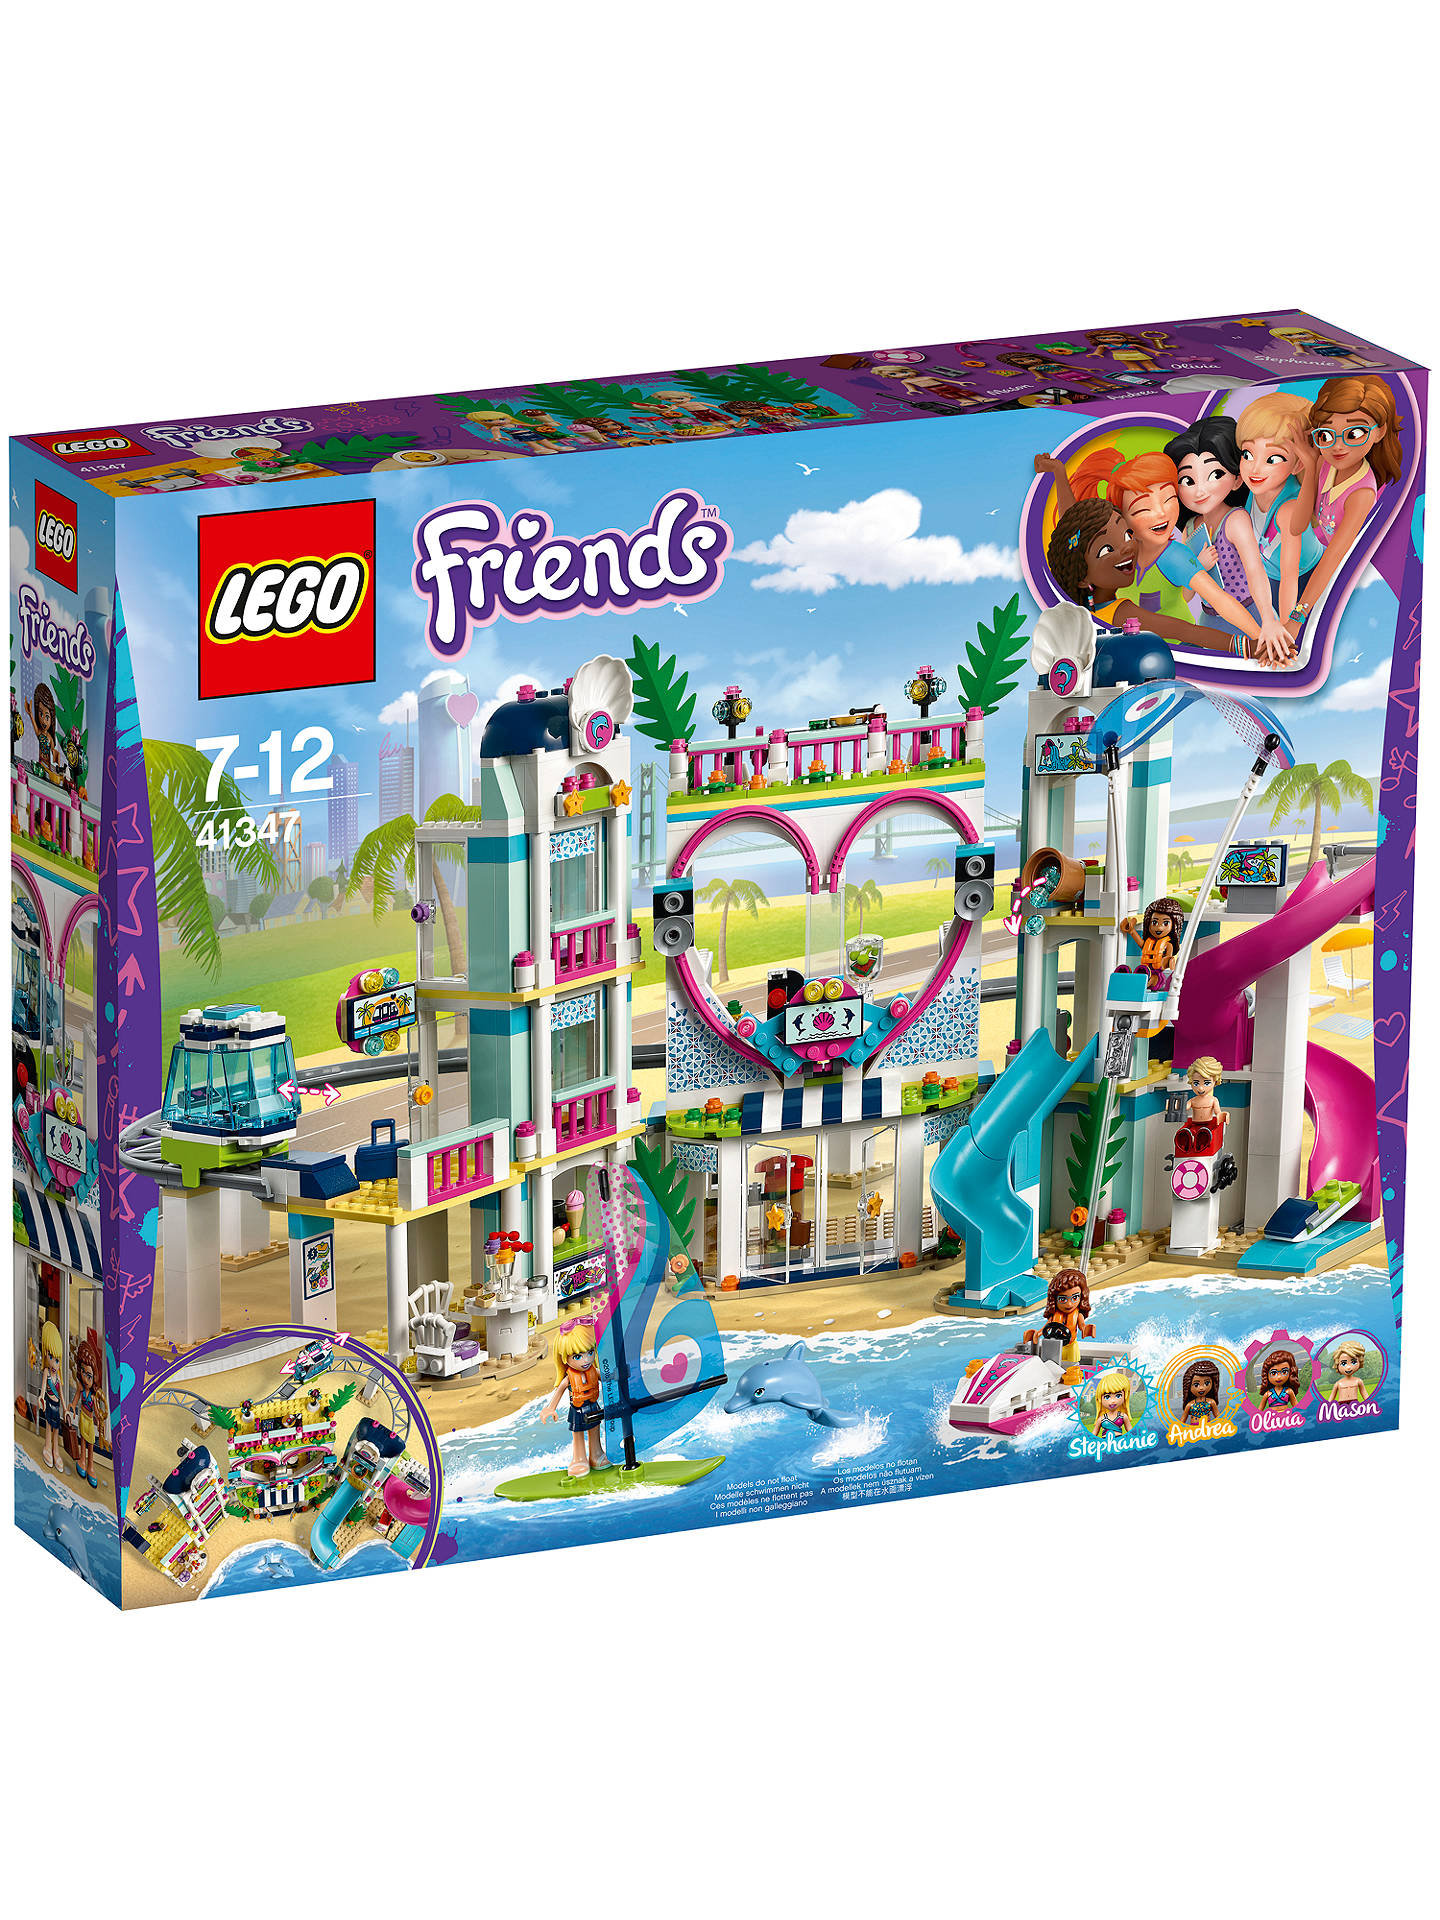 Lego Friends 41347 Heartlake City Resort At John Lewis Partners